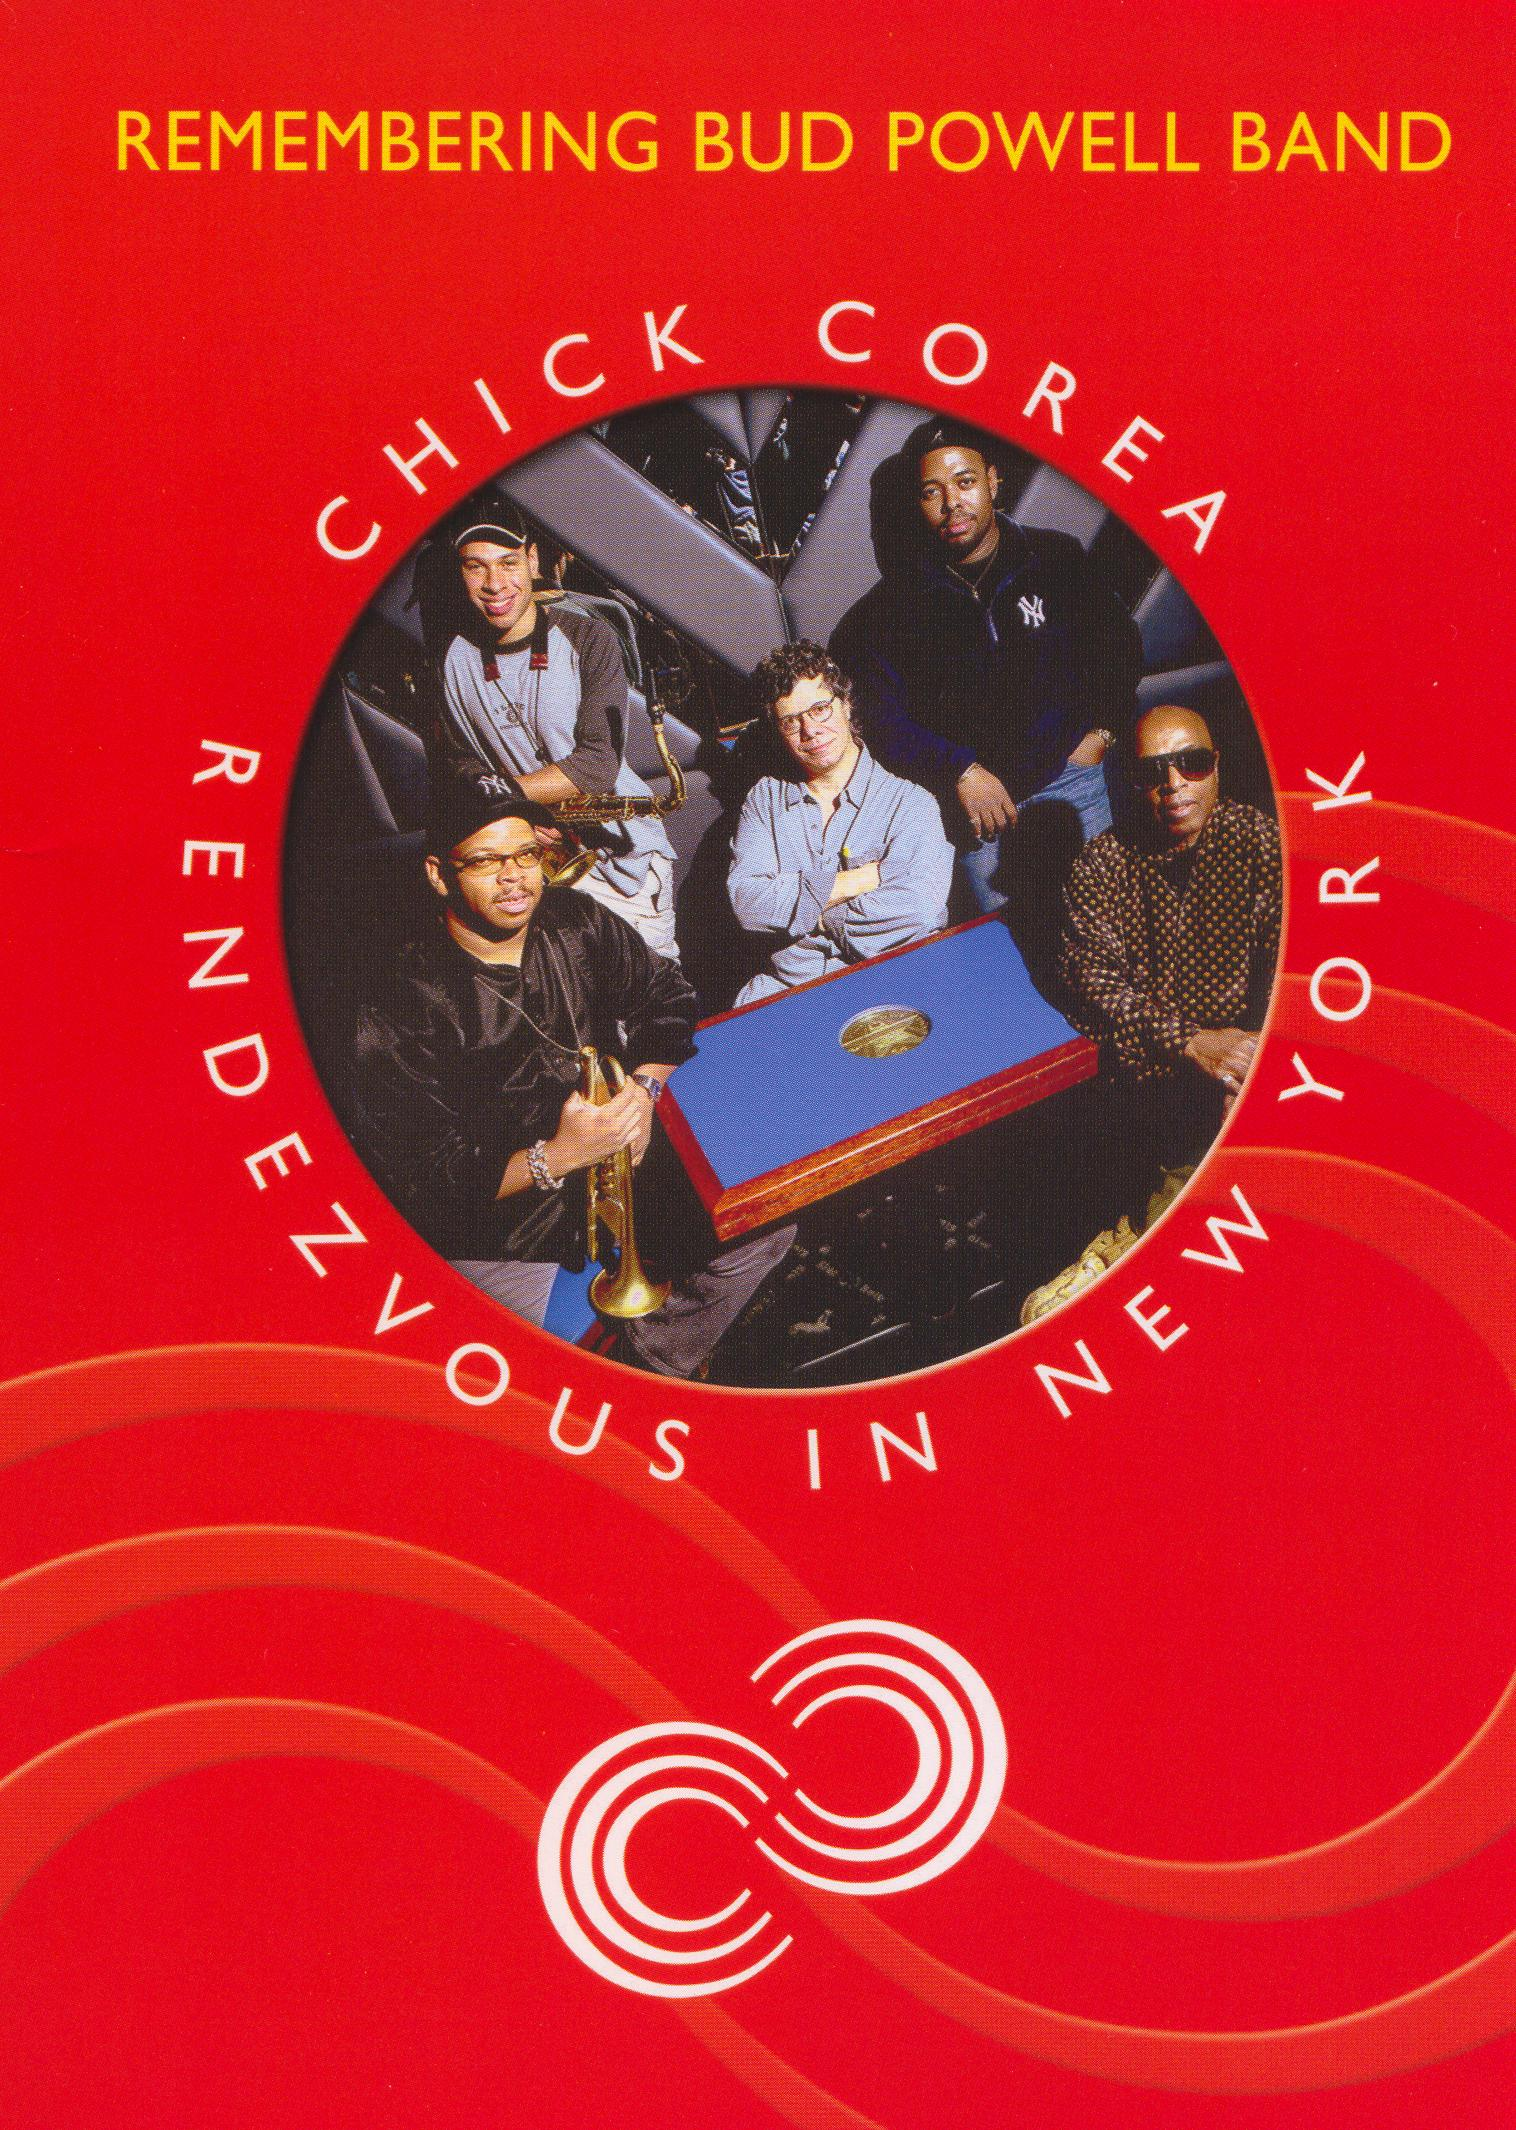 Chick Corea: Rendezvous in New York - Remembering Bud Powell Band